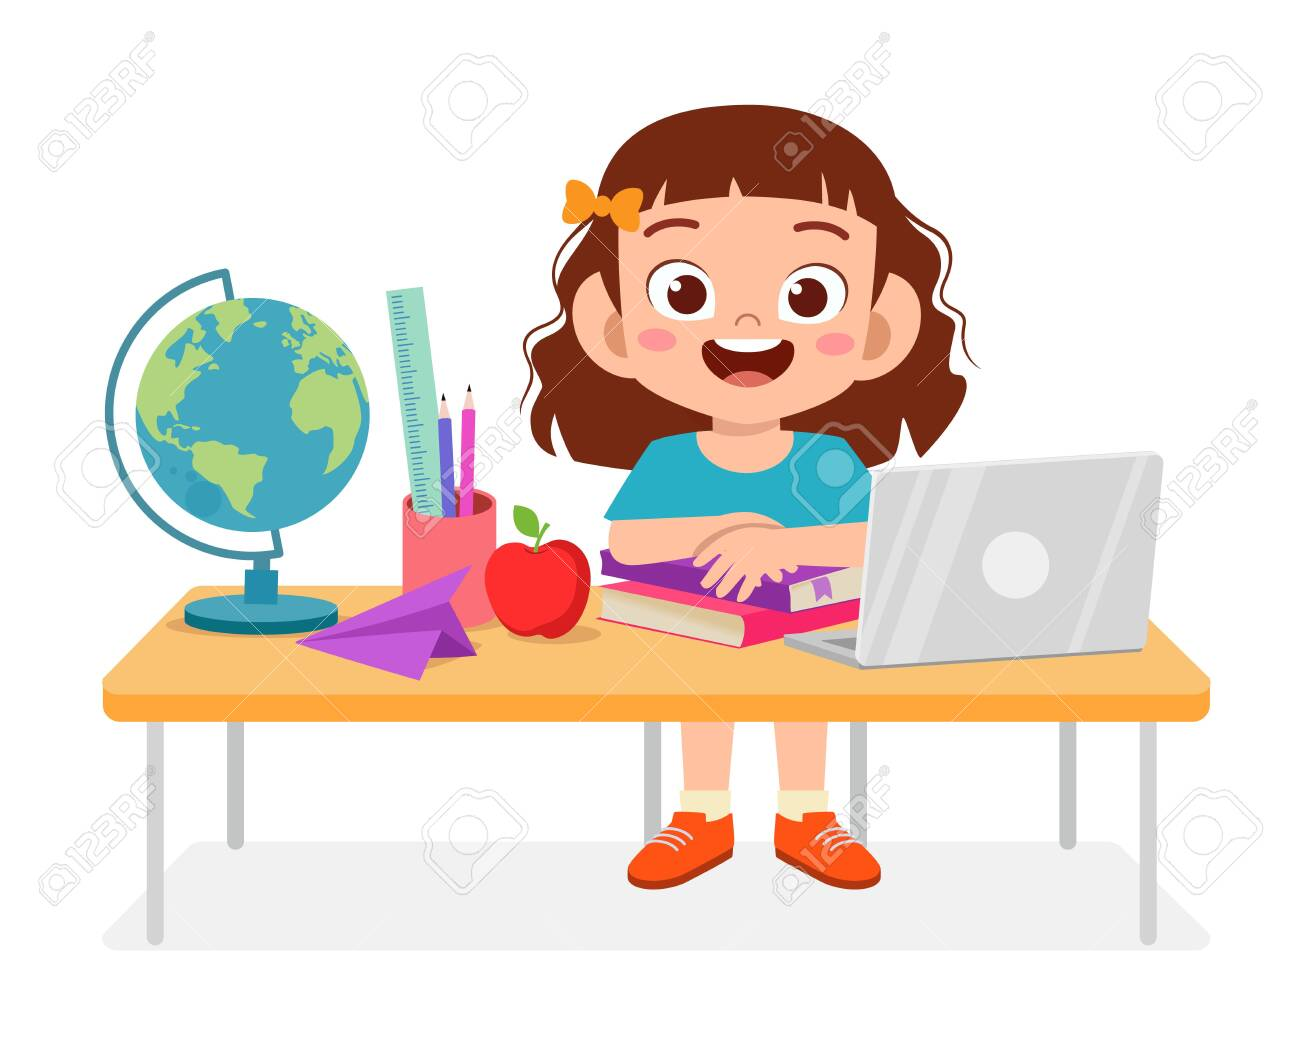 Happy Cue Kid Girl Study On Table Royalty Free Cliparts Vectors And Stock Illustration Image 138519479